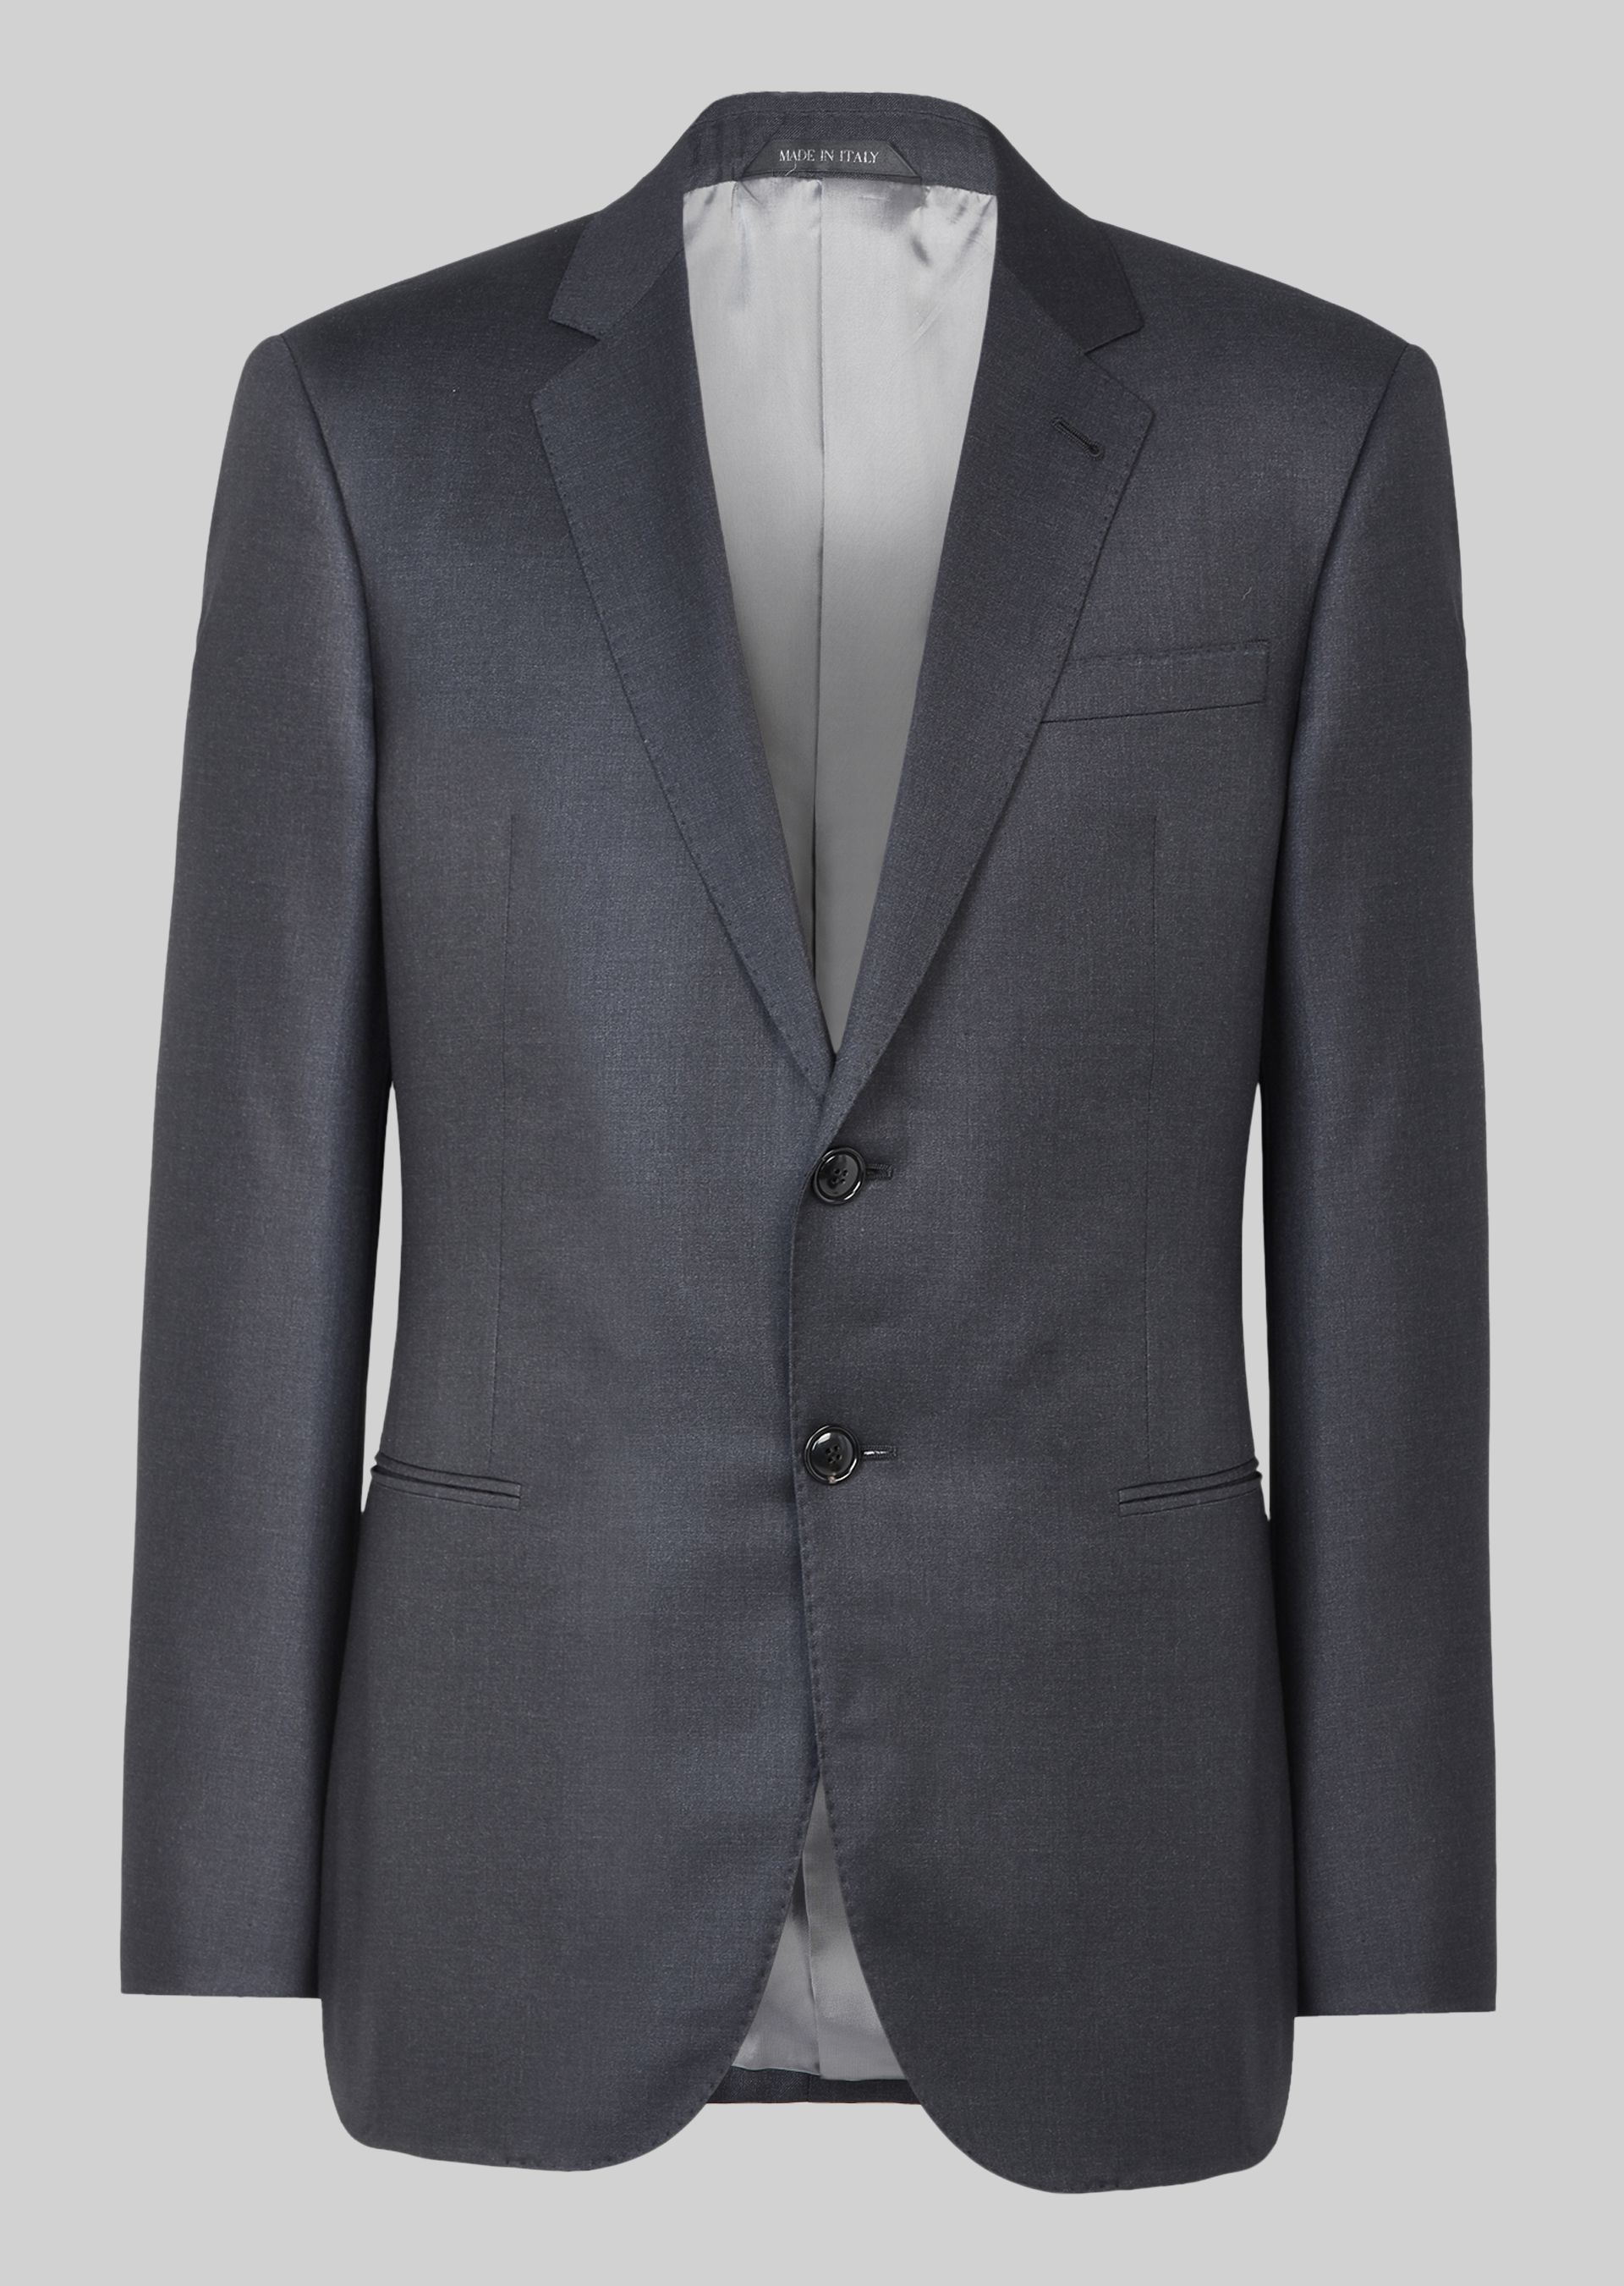 GIORGIO ARMANI WALL STREET WOOL AND CASHMERE SUIT Suit U d